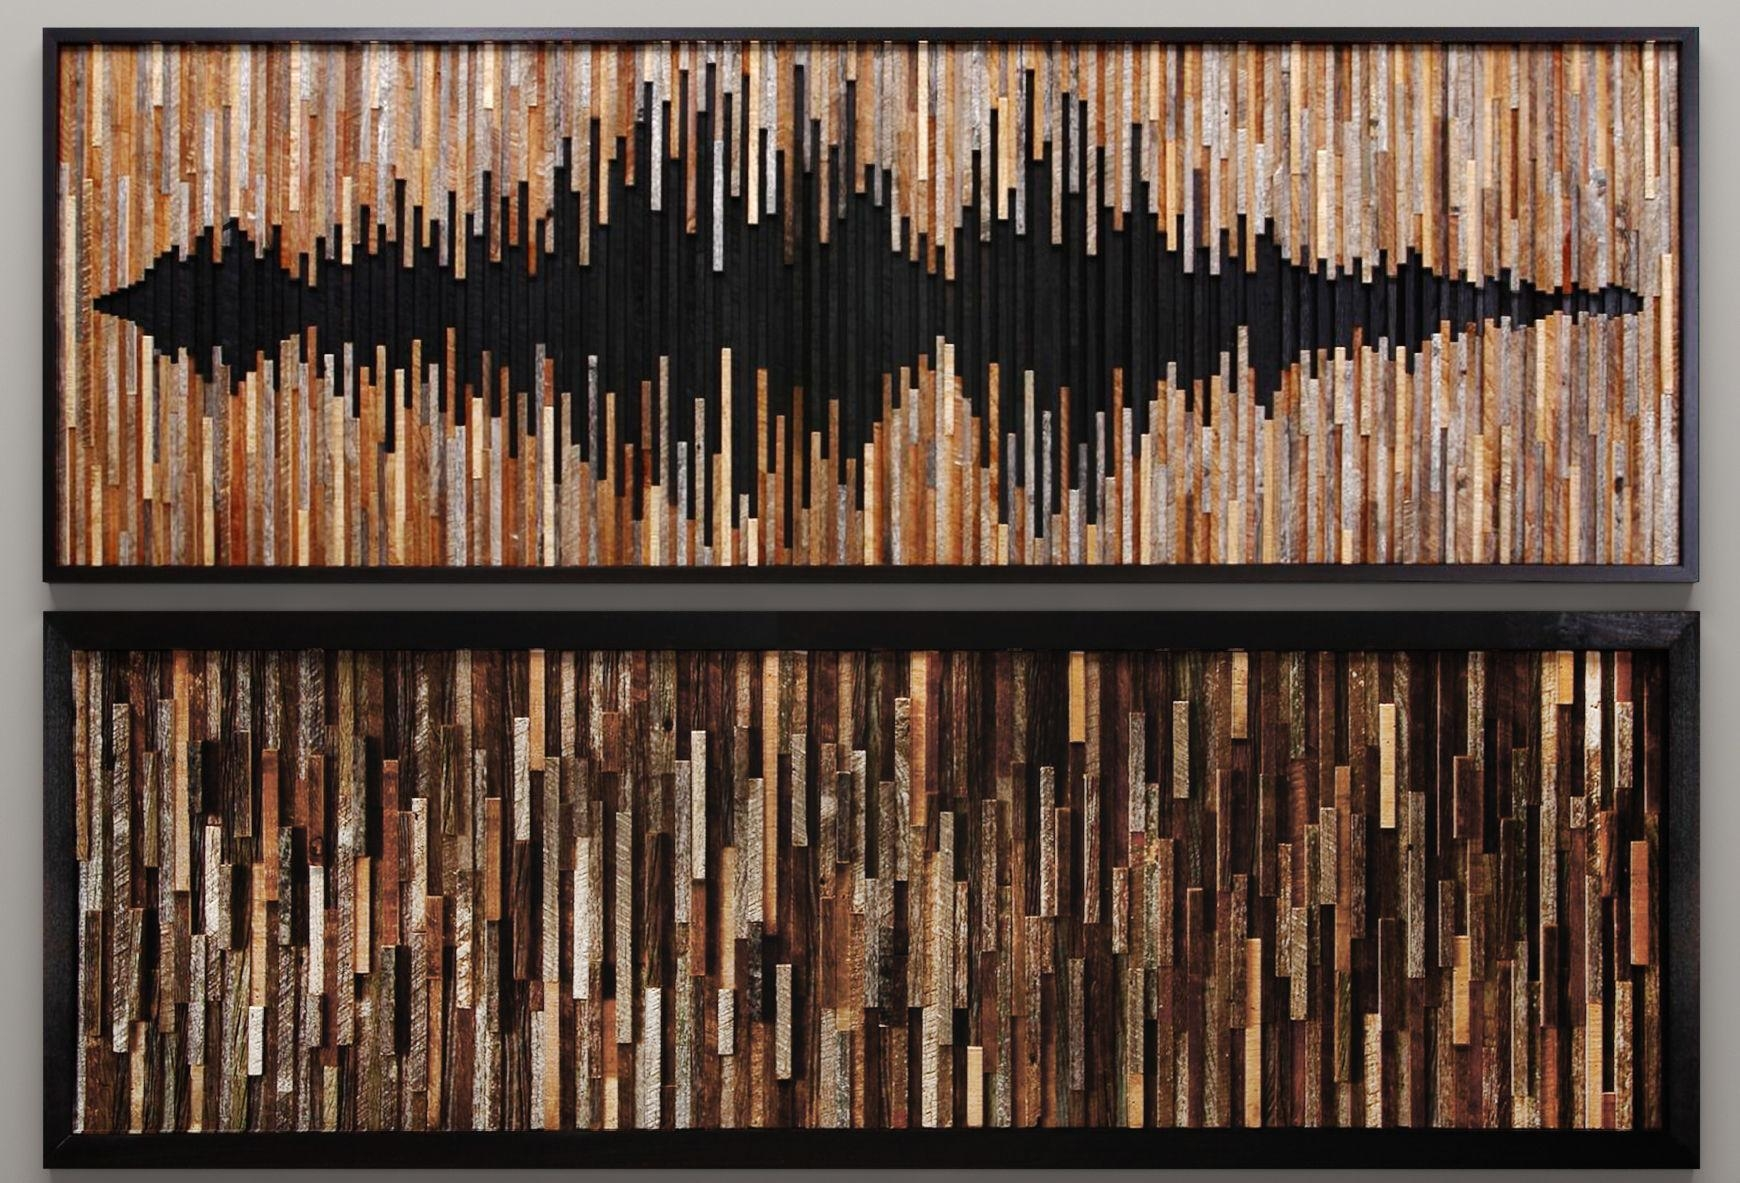 Wood Wall Art 46 3D Model | Cgtrader With Wall Art On Wood (View 17 of 20)